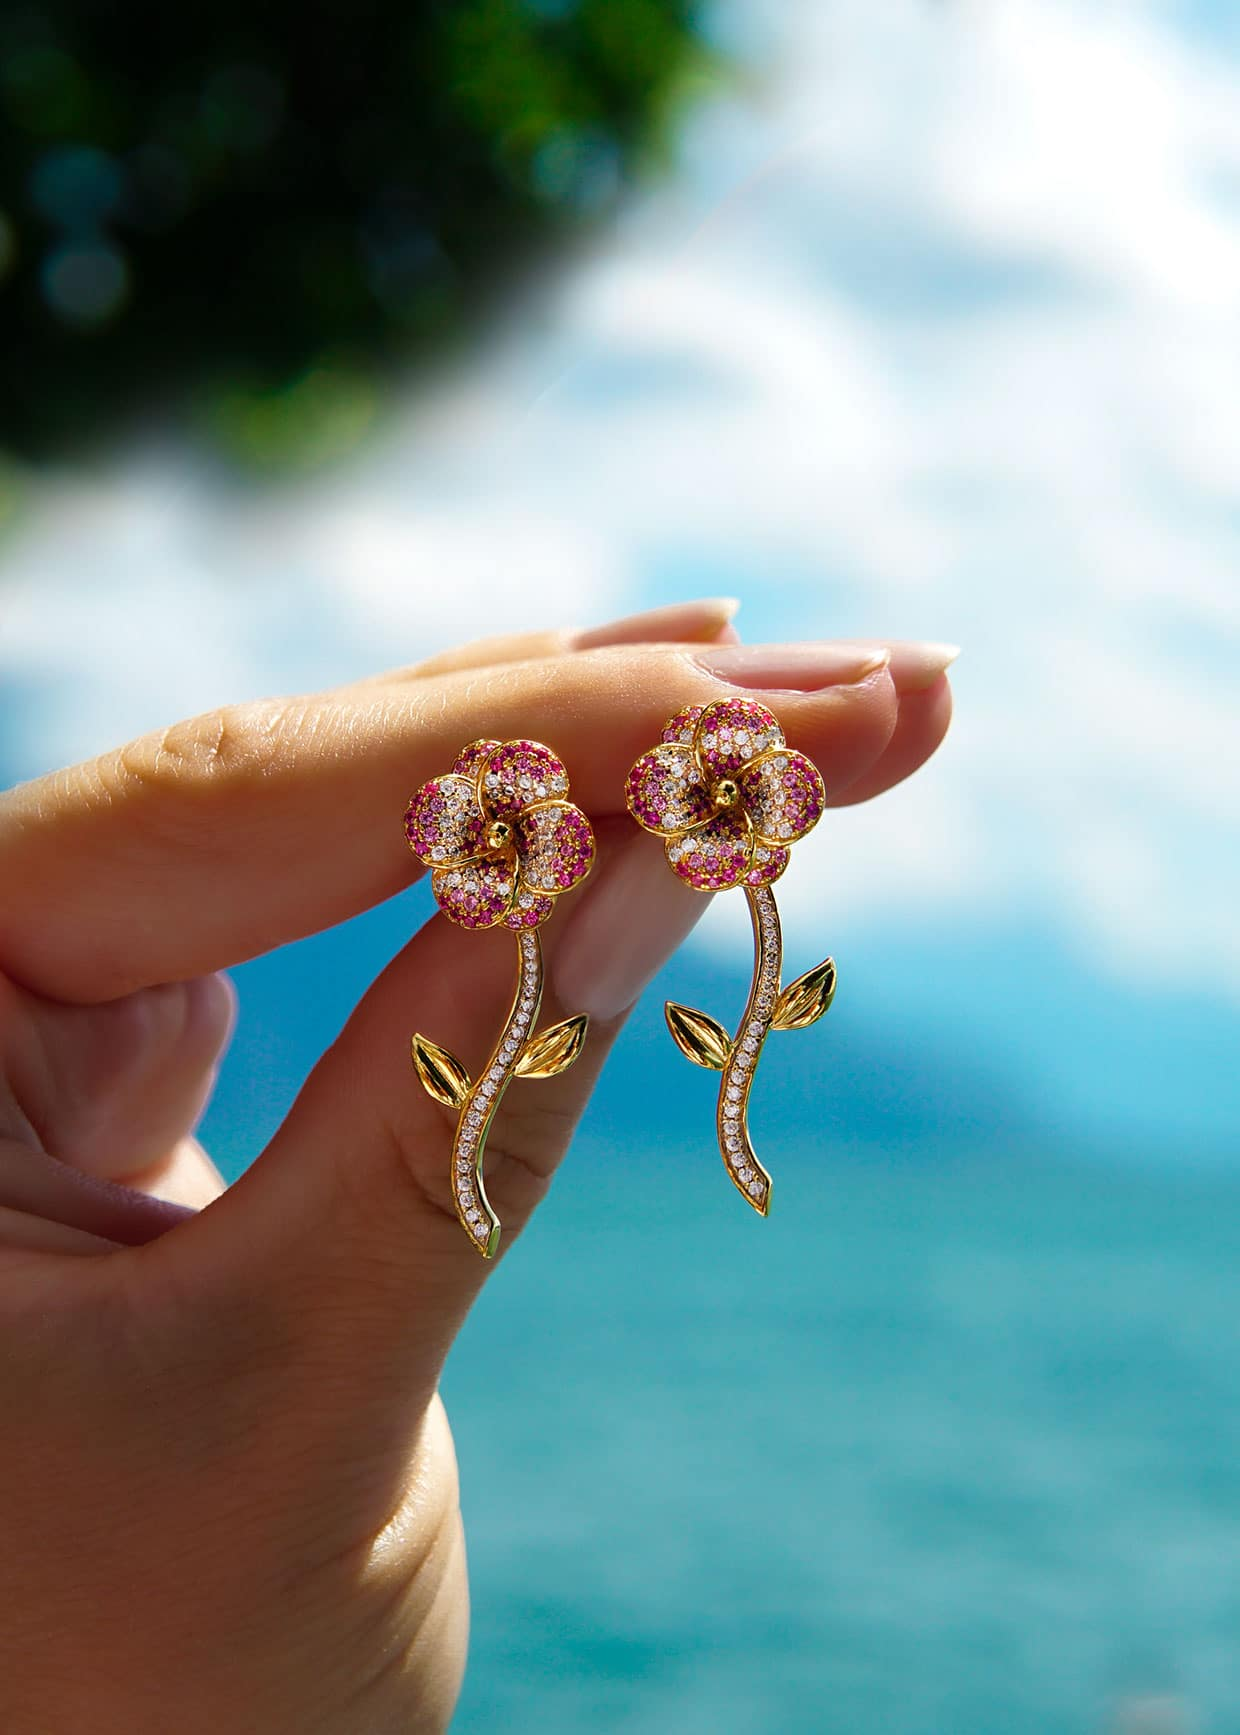 Flora earrings held up in the air